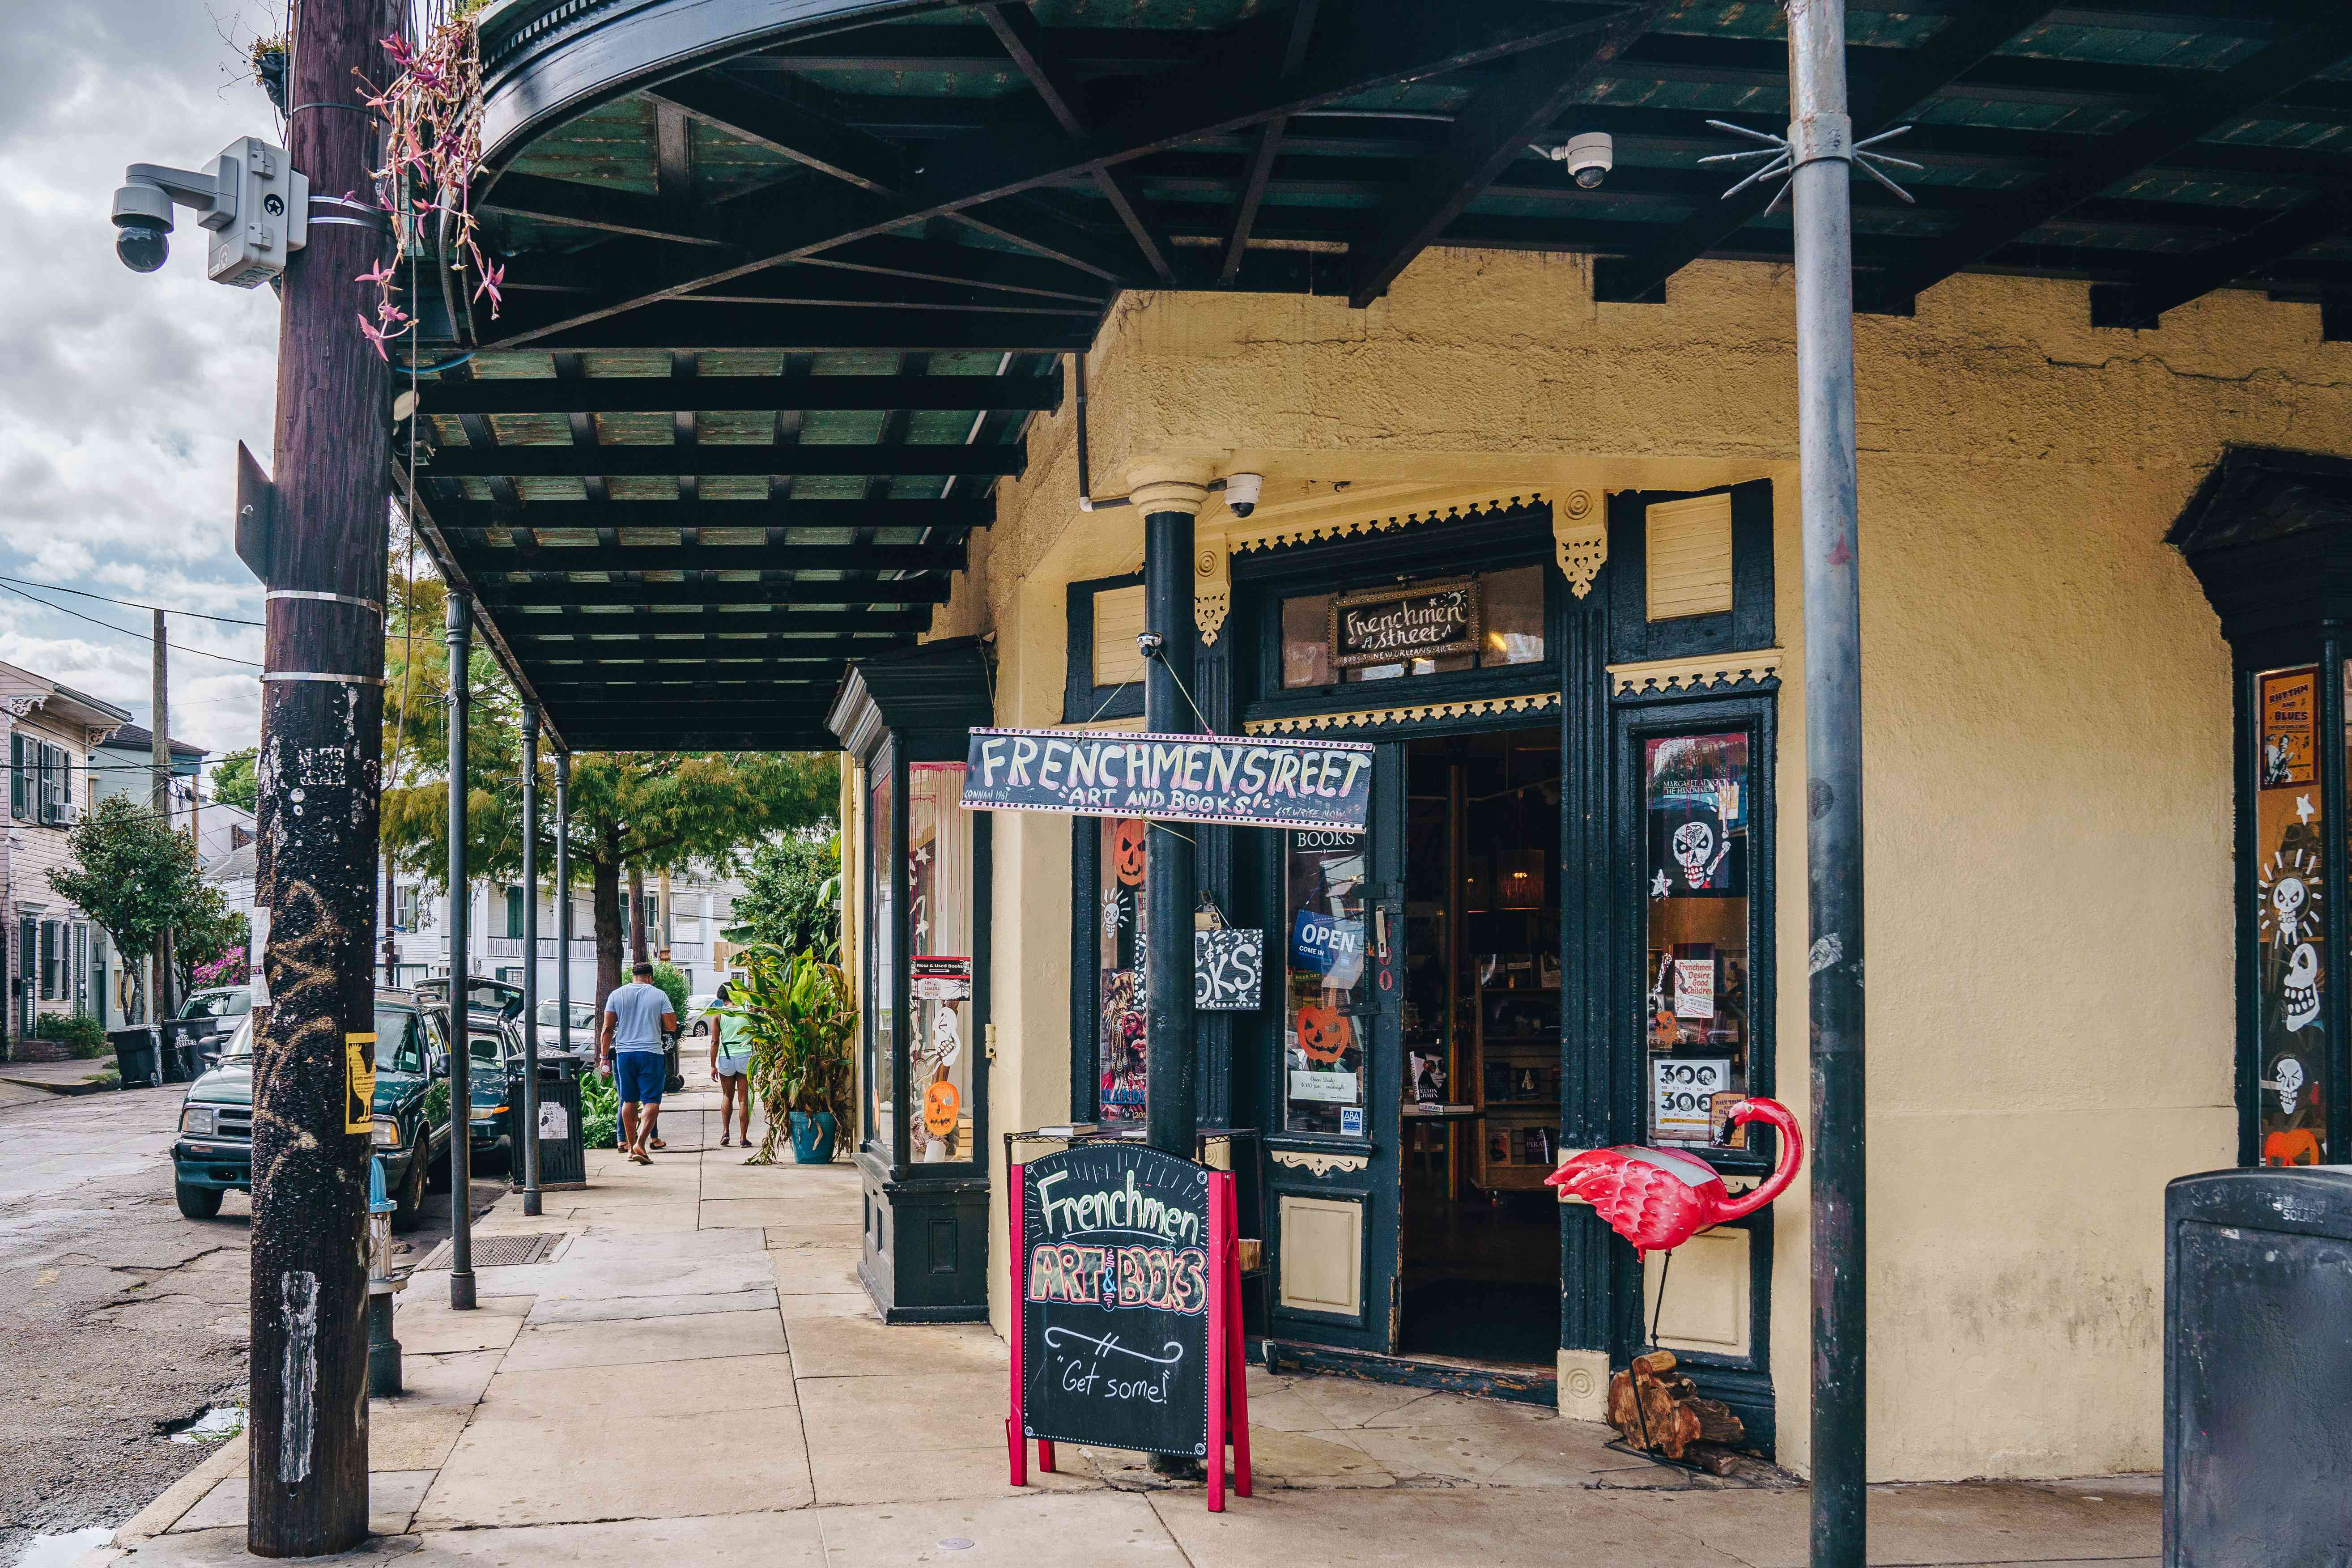 A colorful store on Frenchmen Street